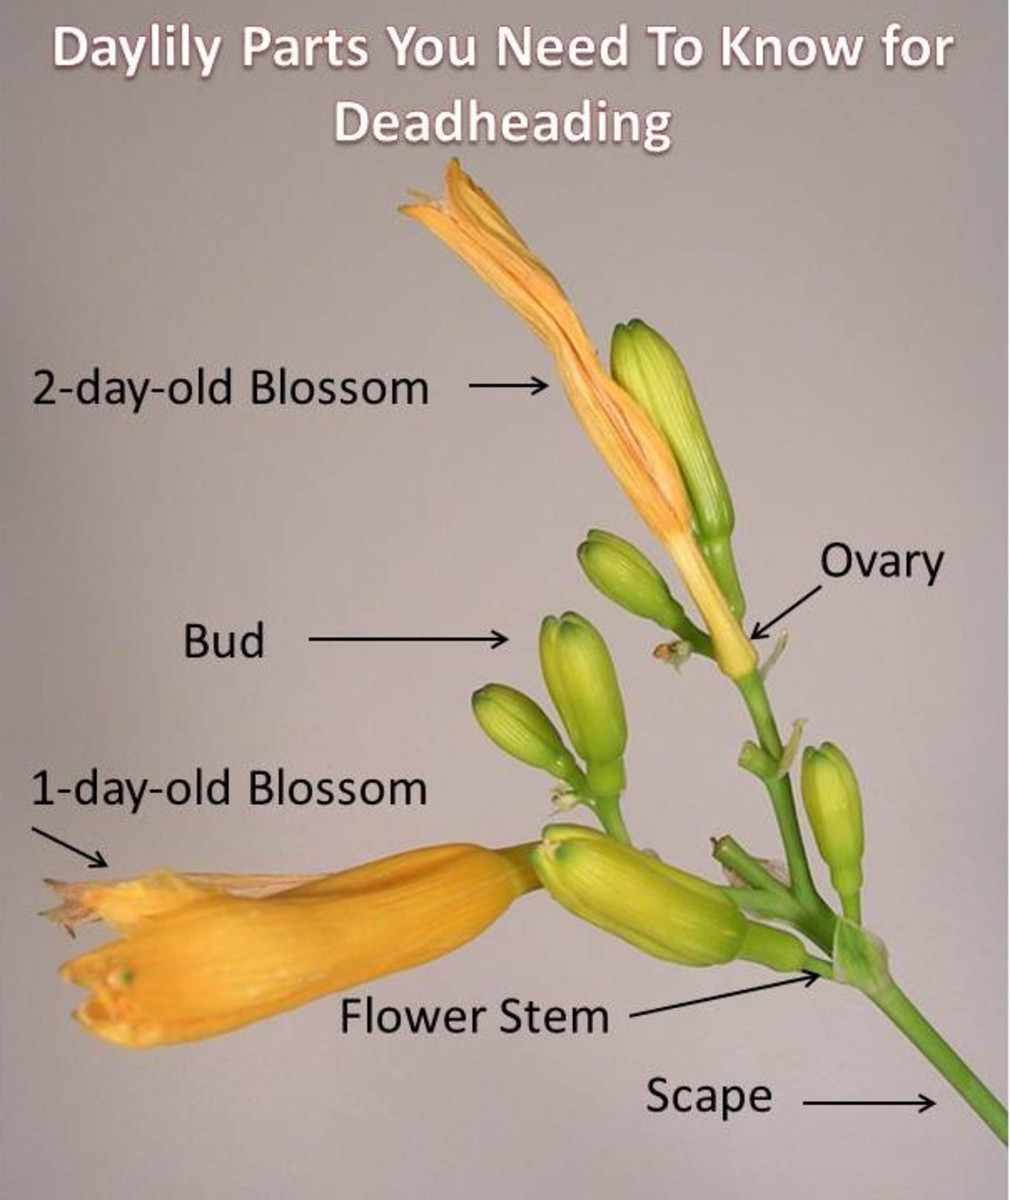 Parts of the daylily